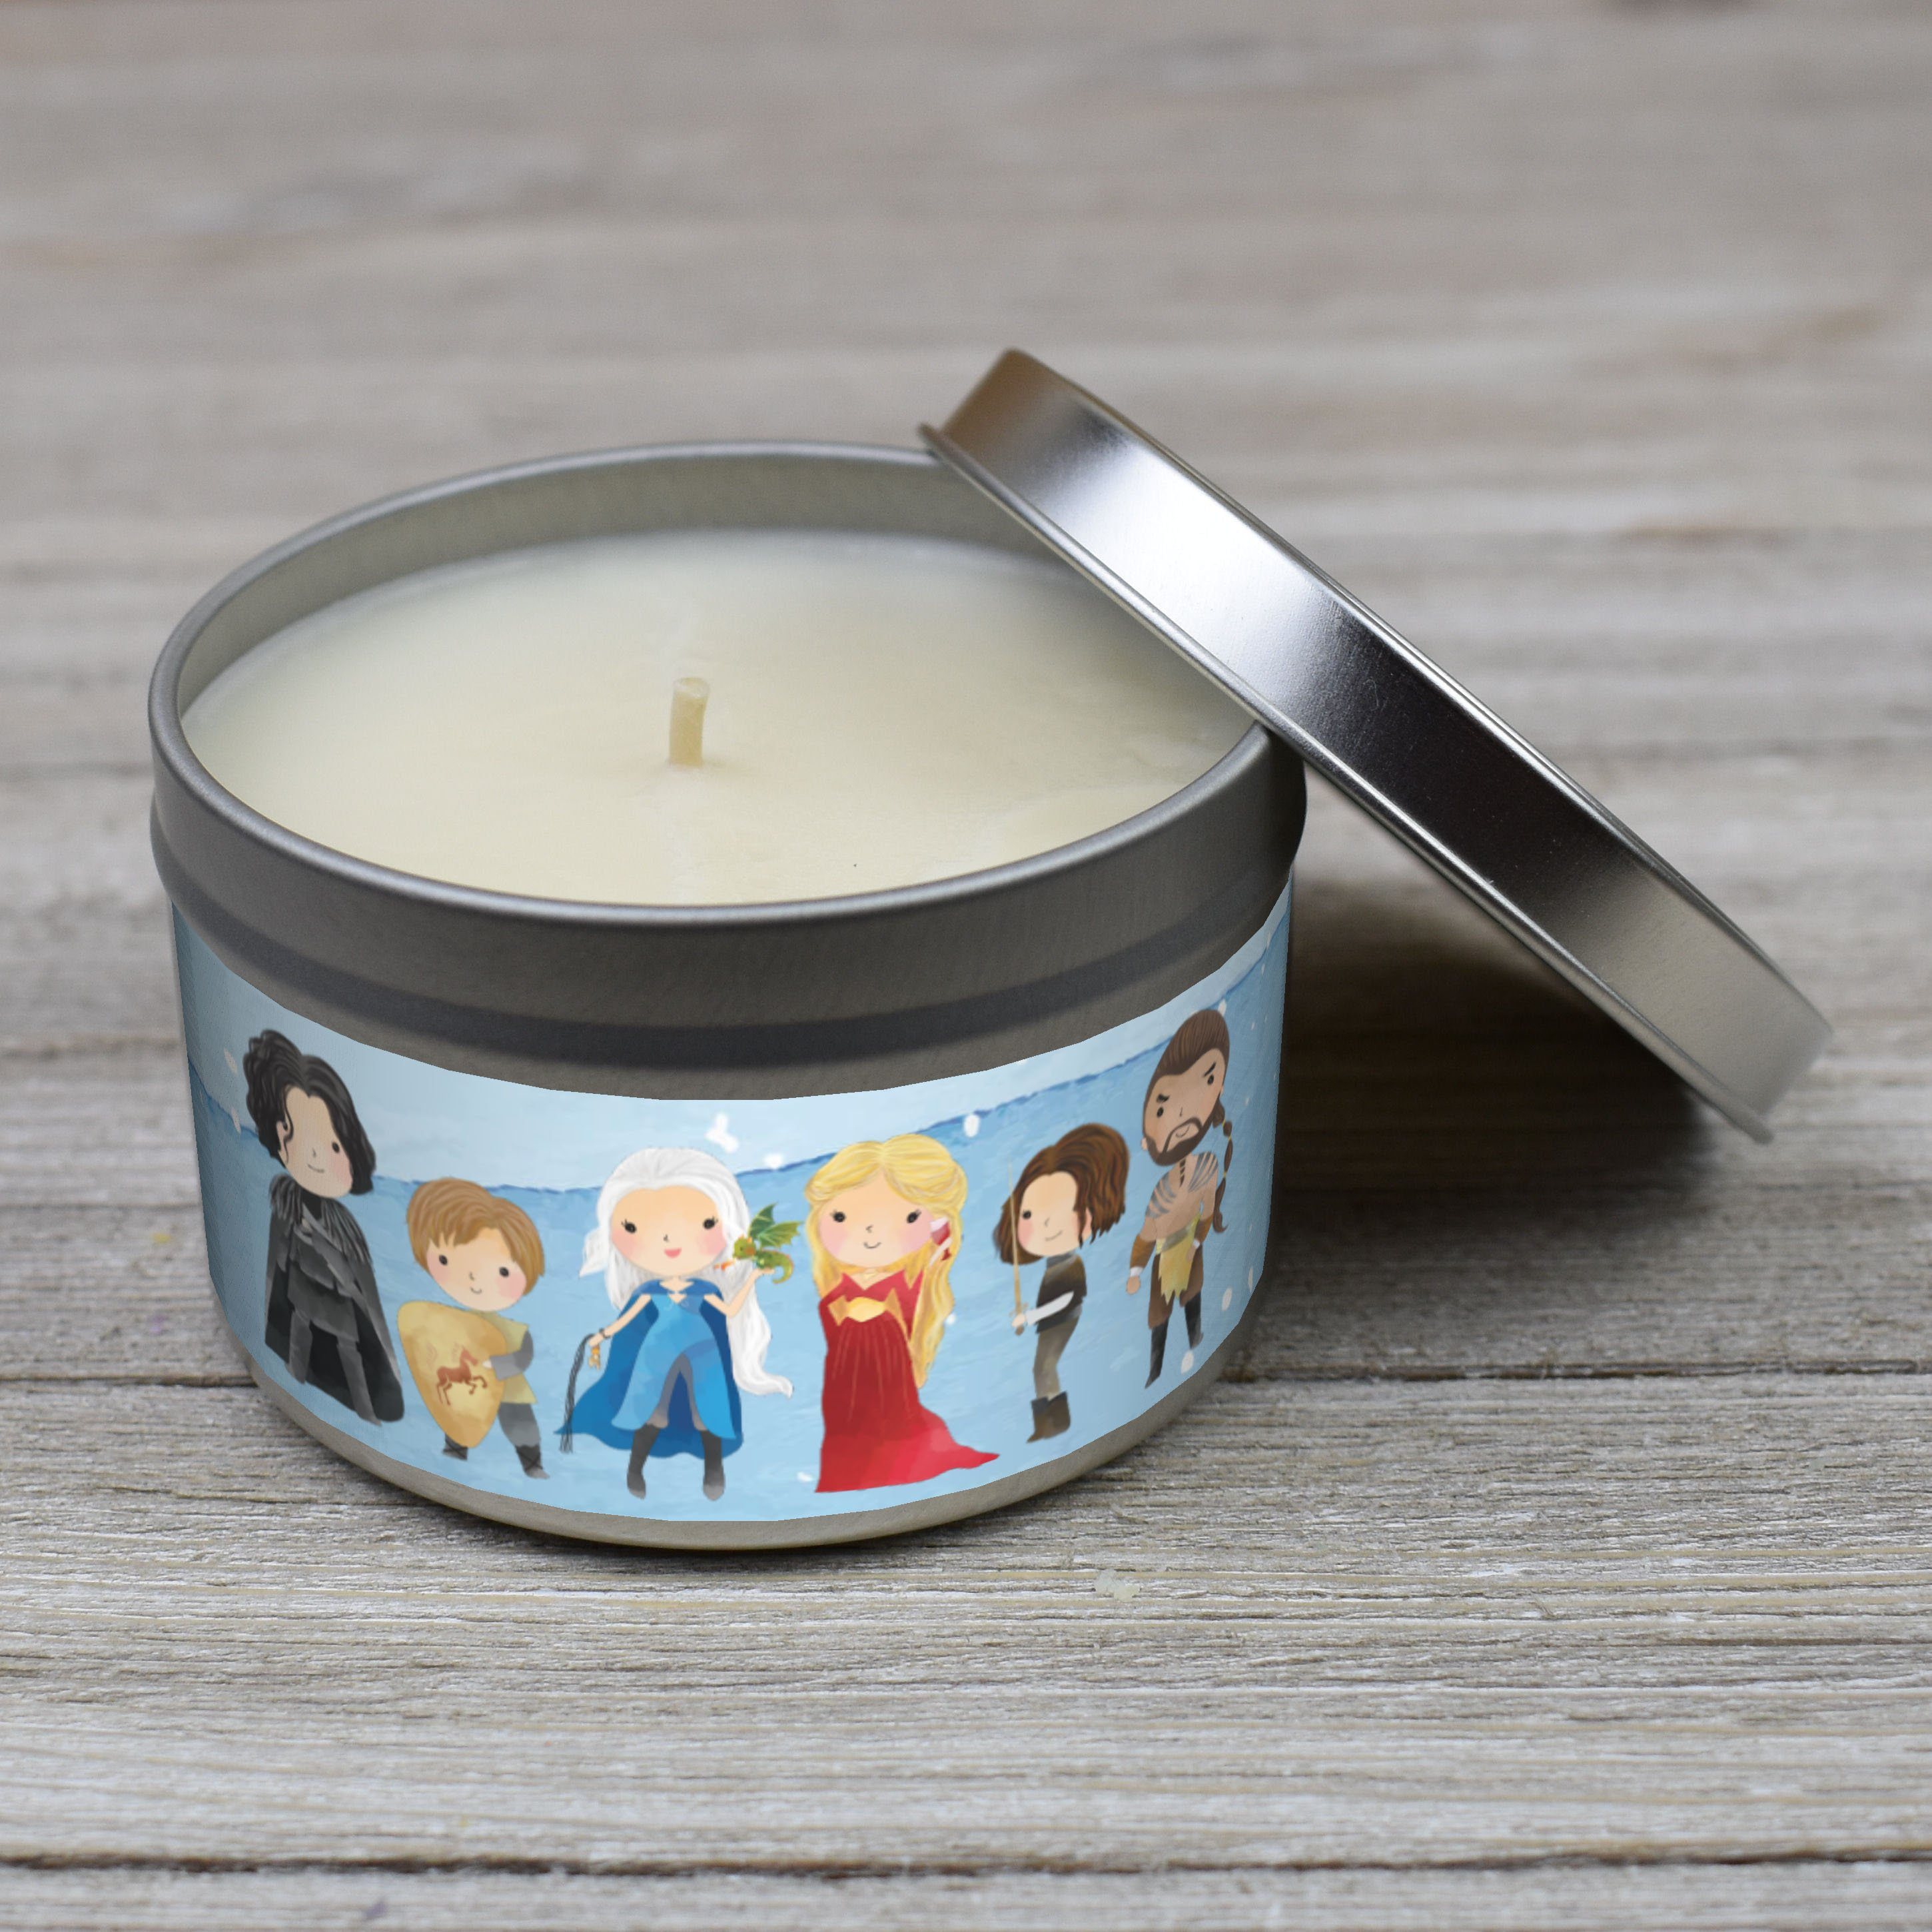 Candle Making Basics Soy Candle Making Candle Making Soy Wax Candles